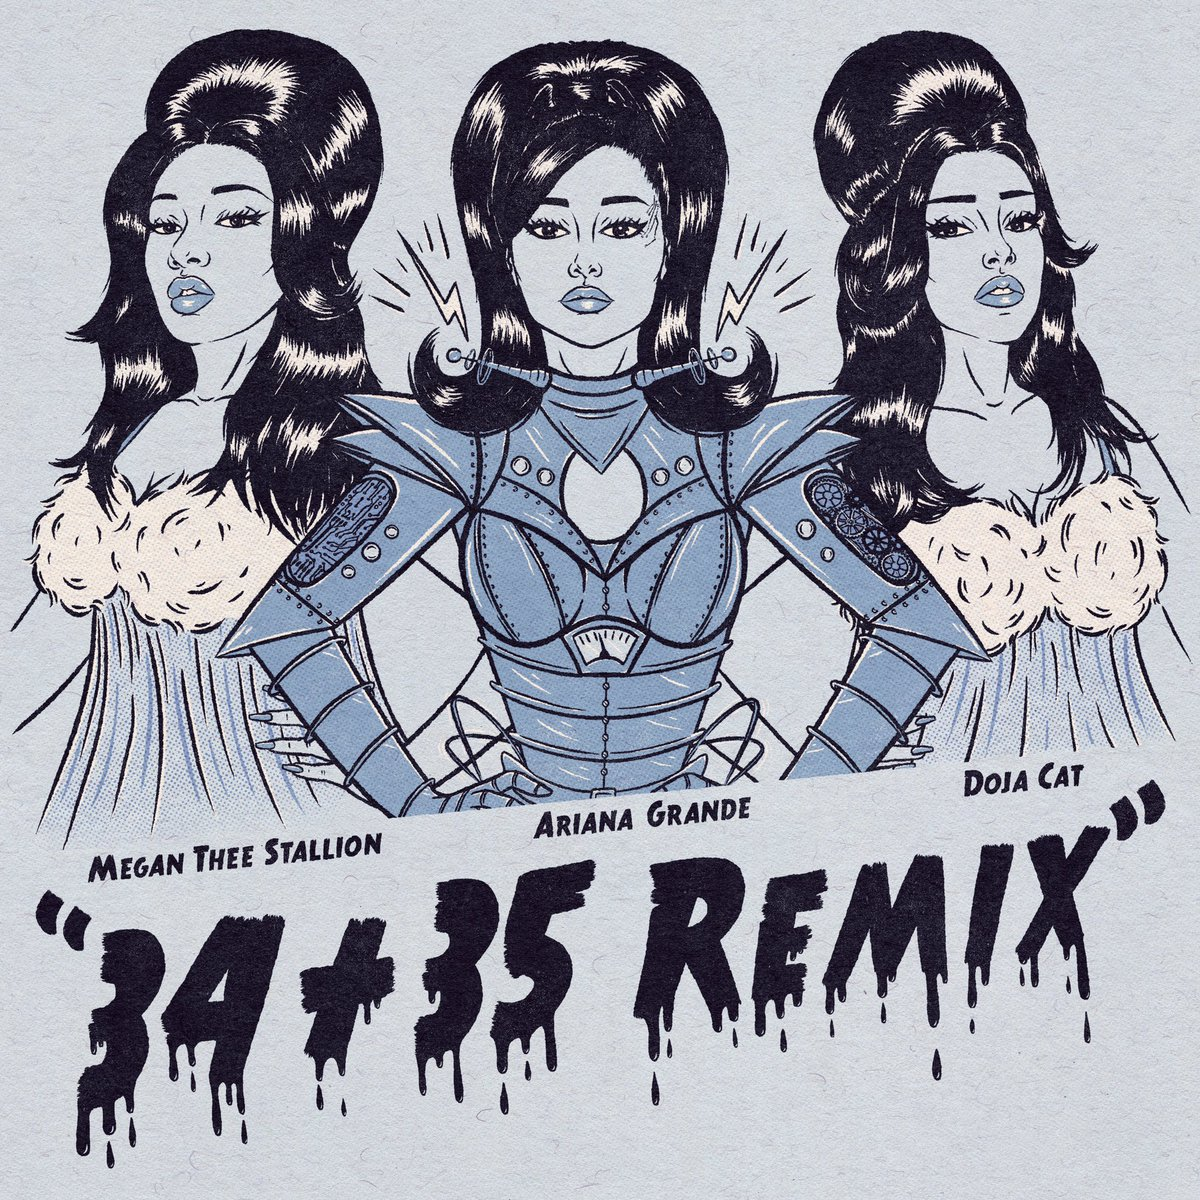 .@ArianaGrande + @theestallion + @DojaCat = 👑 x 3. Listen to #3435REMIX now →